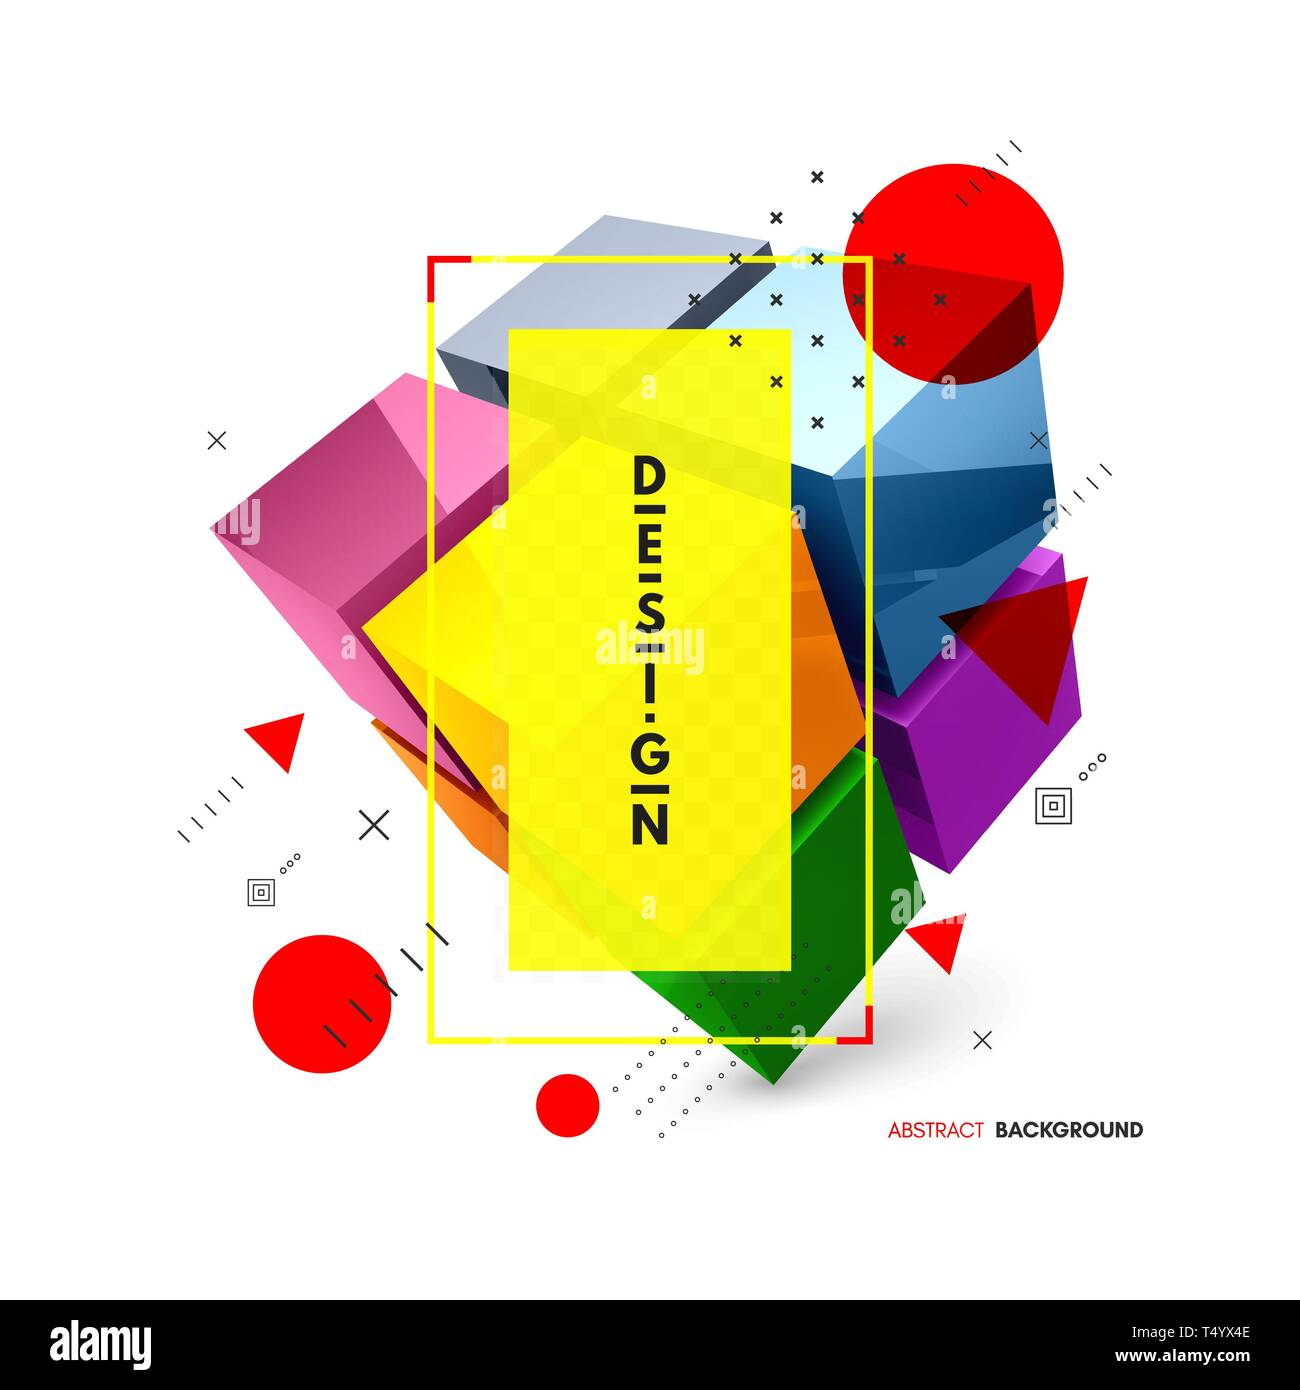 Cube. Design element for business or construction concept. 3d vector illustration. Stock Vector